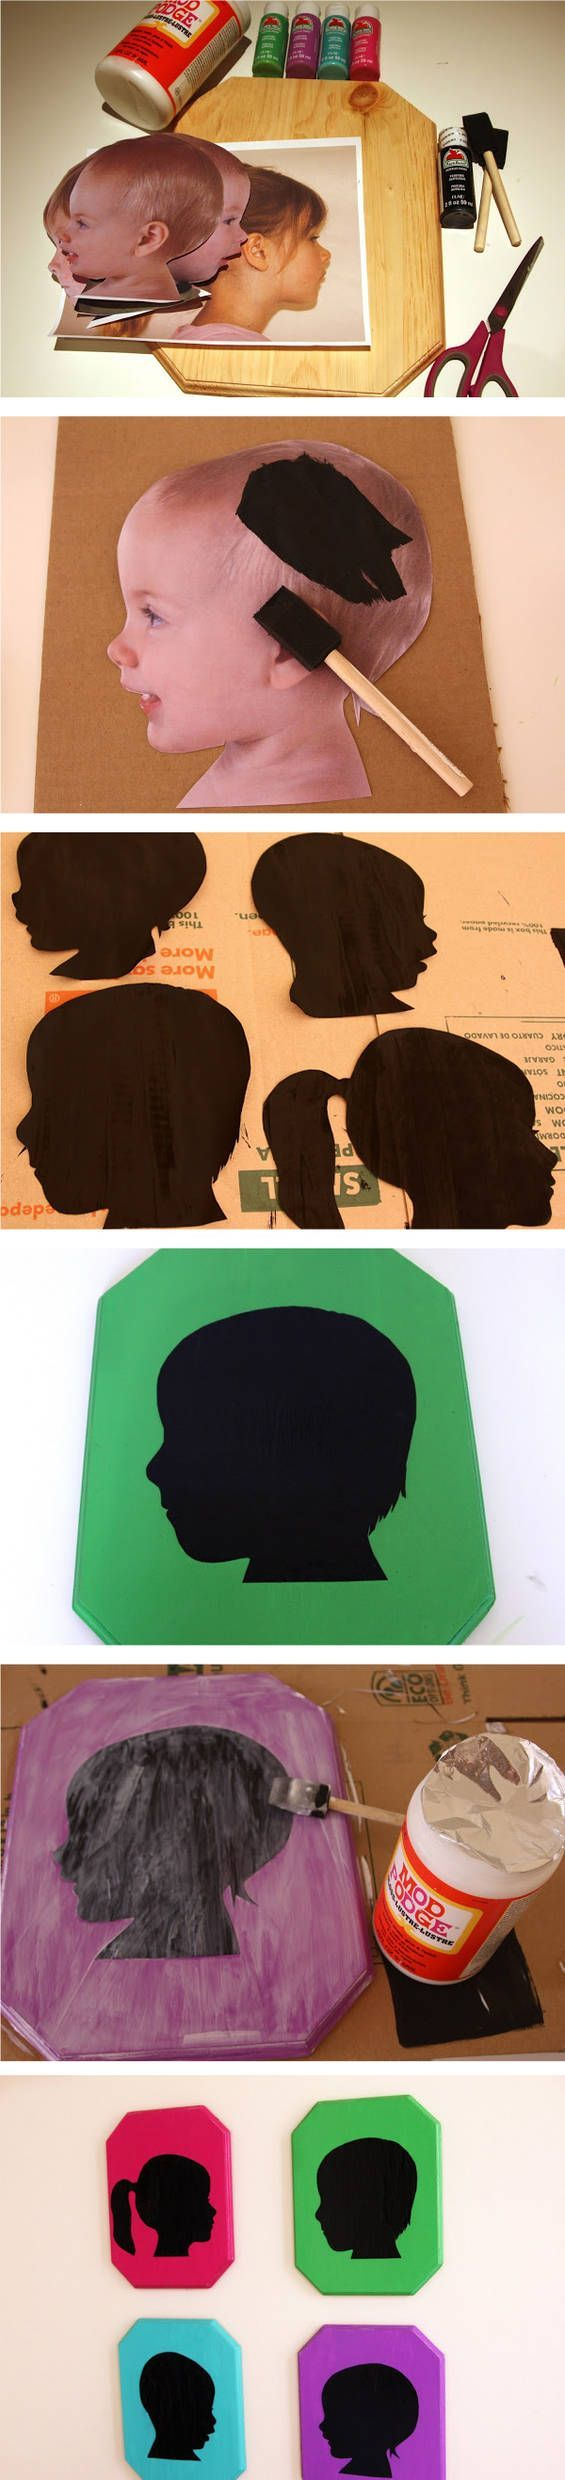 This is such a clever way to do silhouettes! Would be such a fun class project to do, then display on the wall and have parents try to guess which one is their child! #diy #crafts